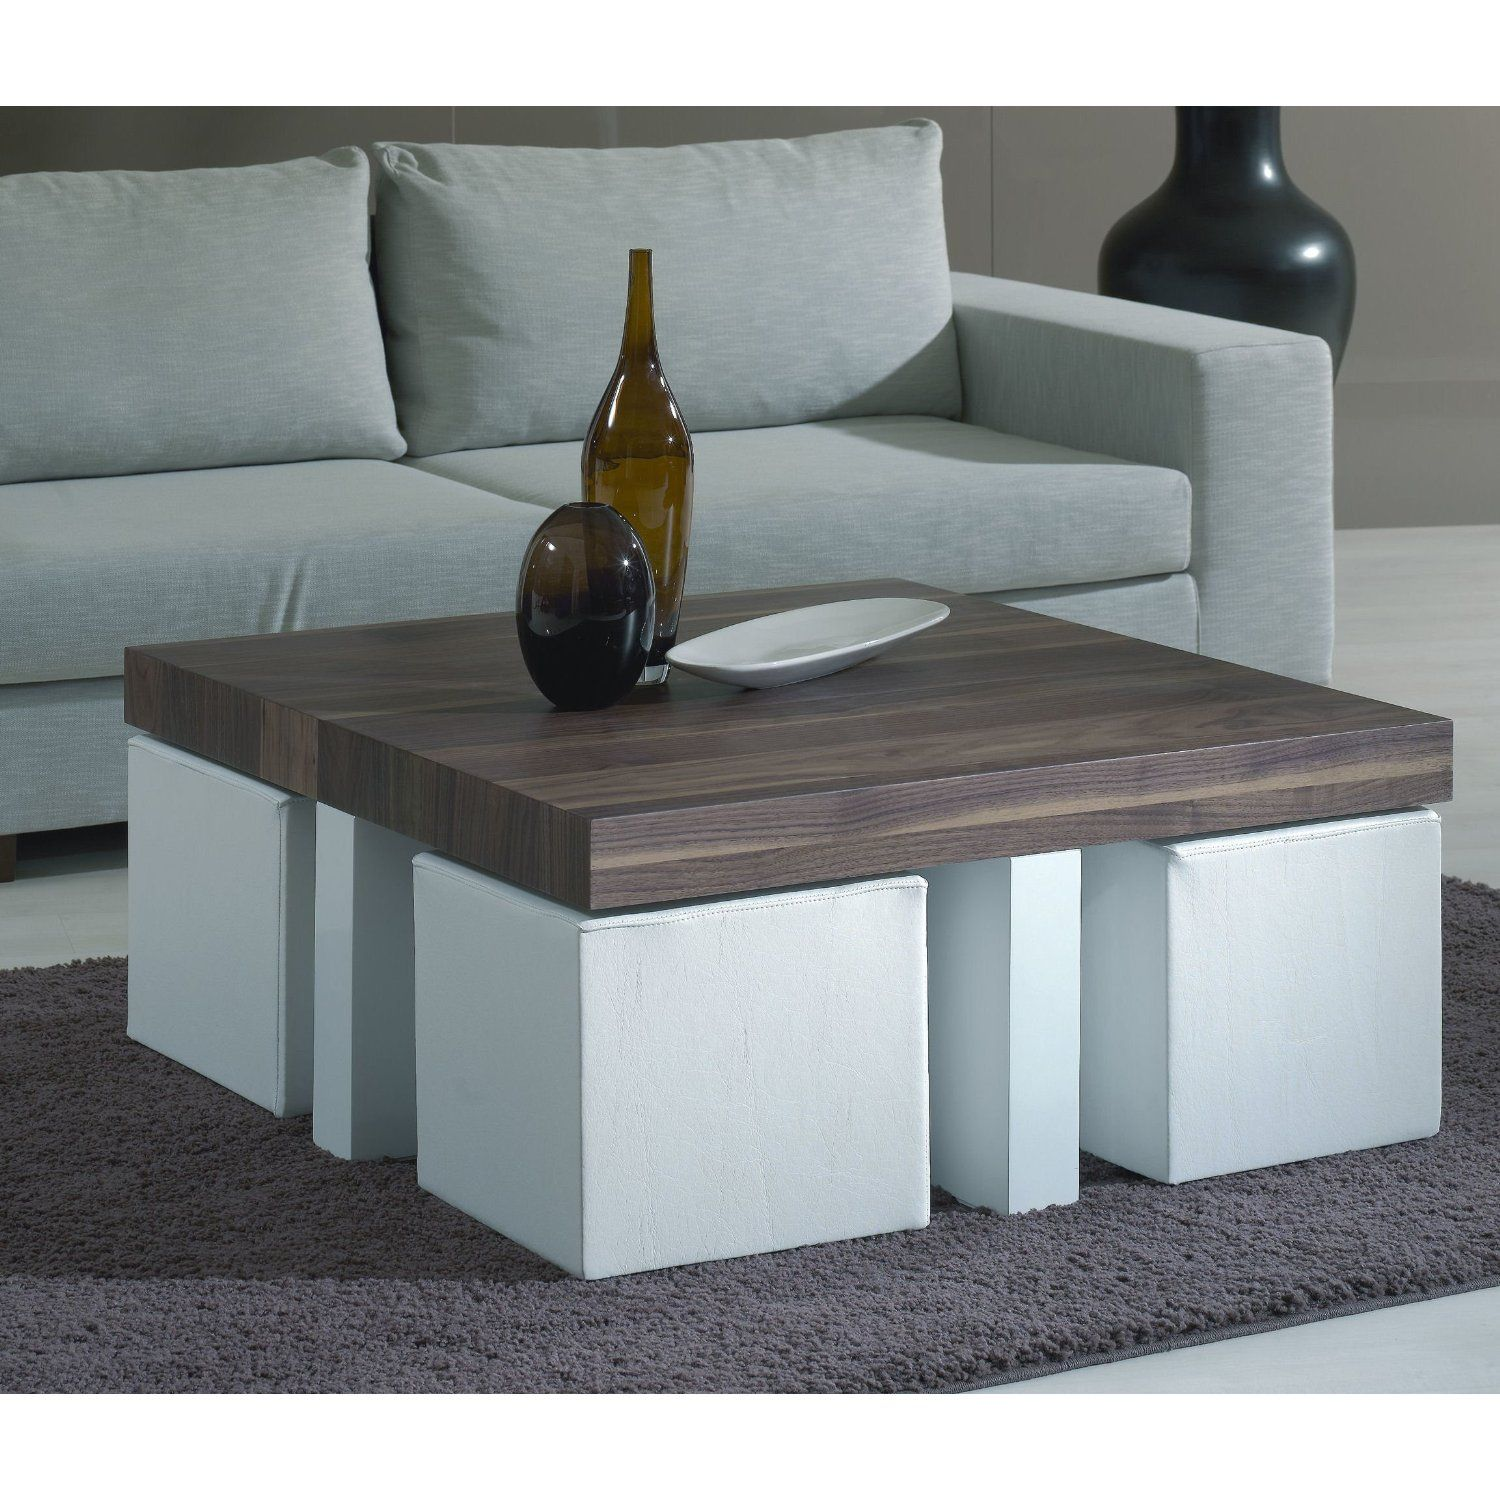 Center Tables With Storage Coffee Table With Stools Love This Idea For Stools